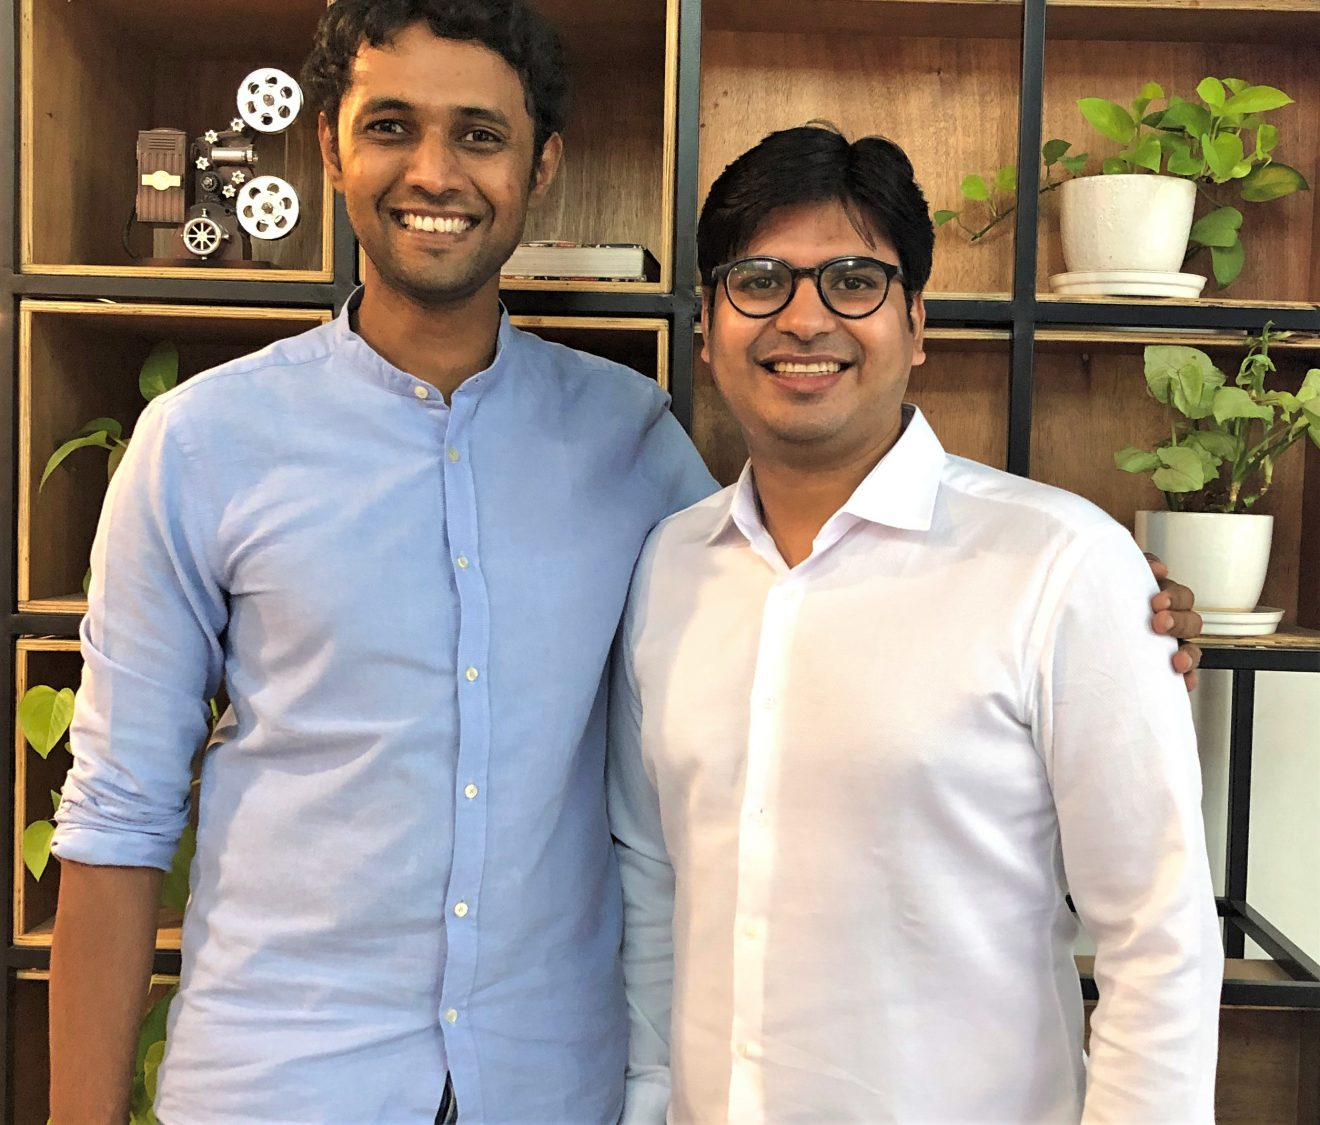 B2B startup Fashinza raises A funding co-led by Accel Partners and Elevation Capital